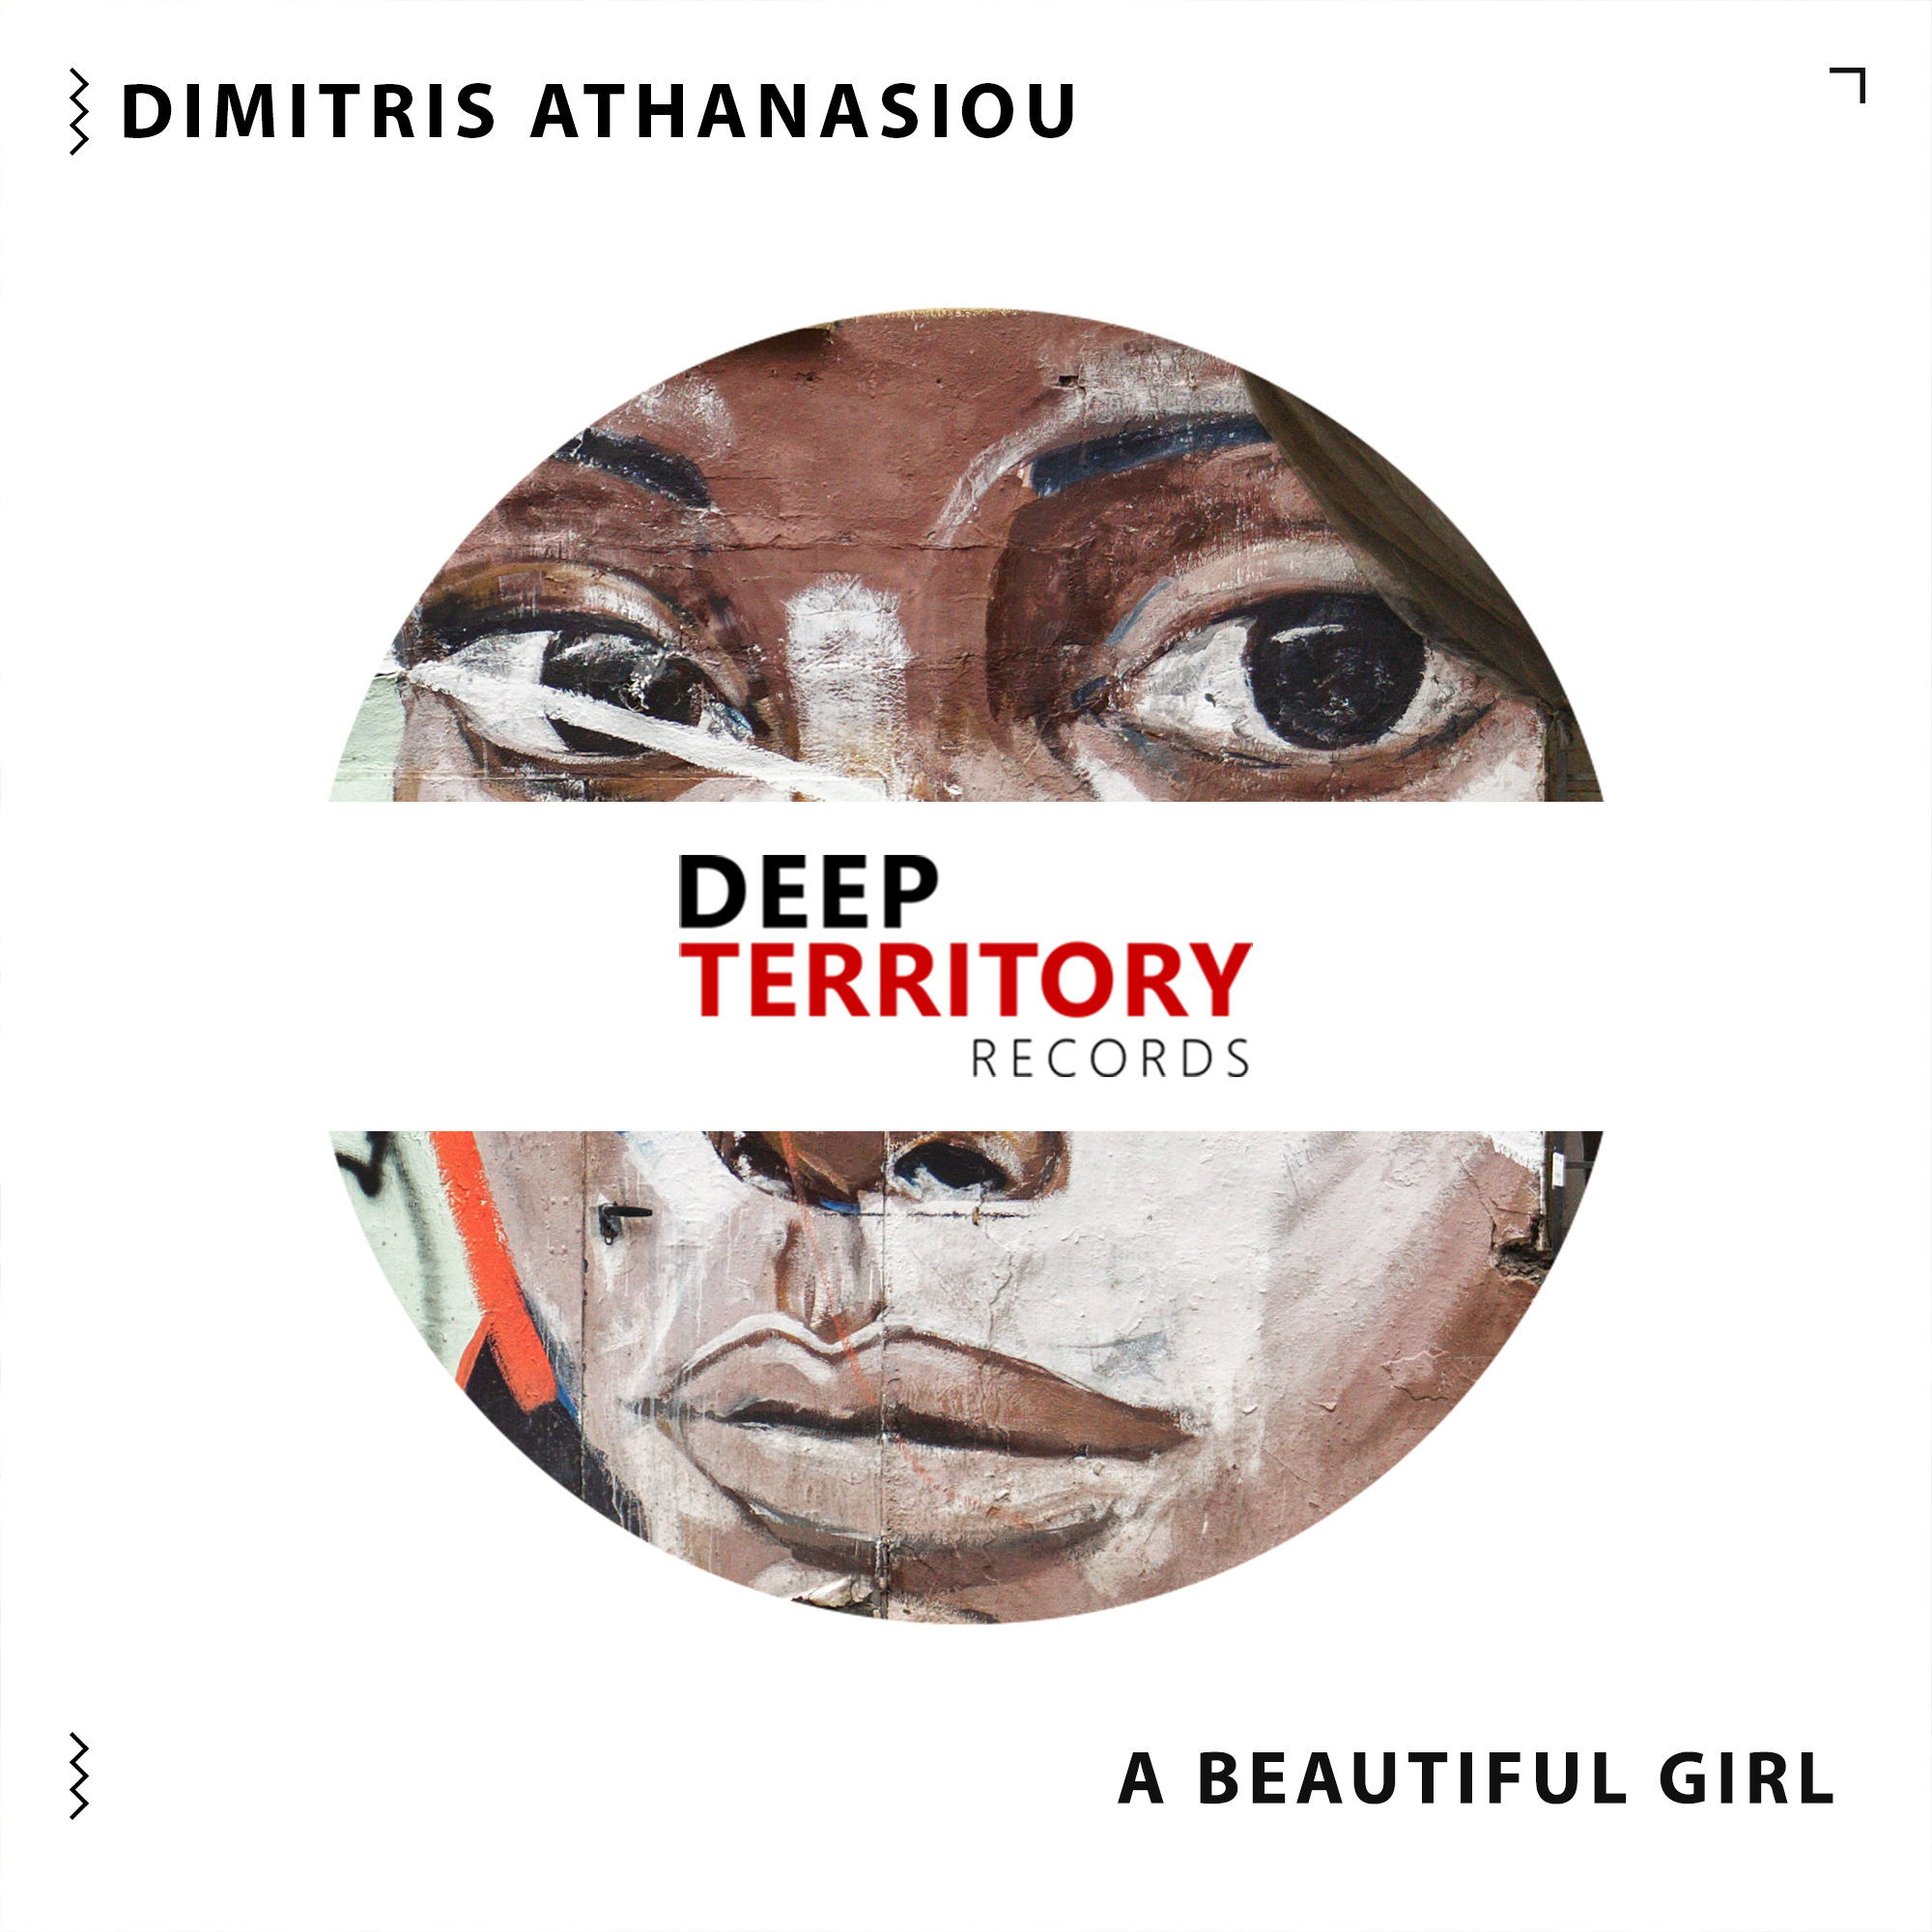 Dimitris Athanasiou bEAUTIFUL gIRL